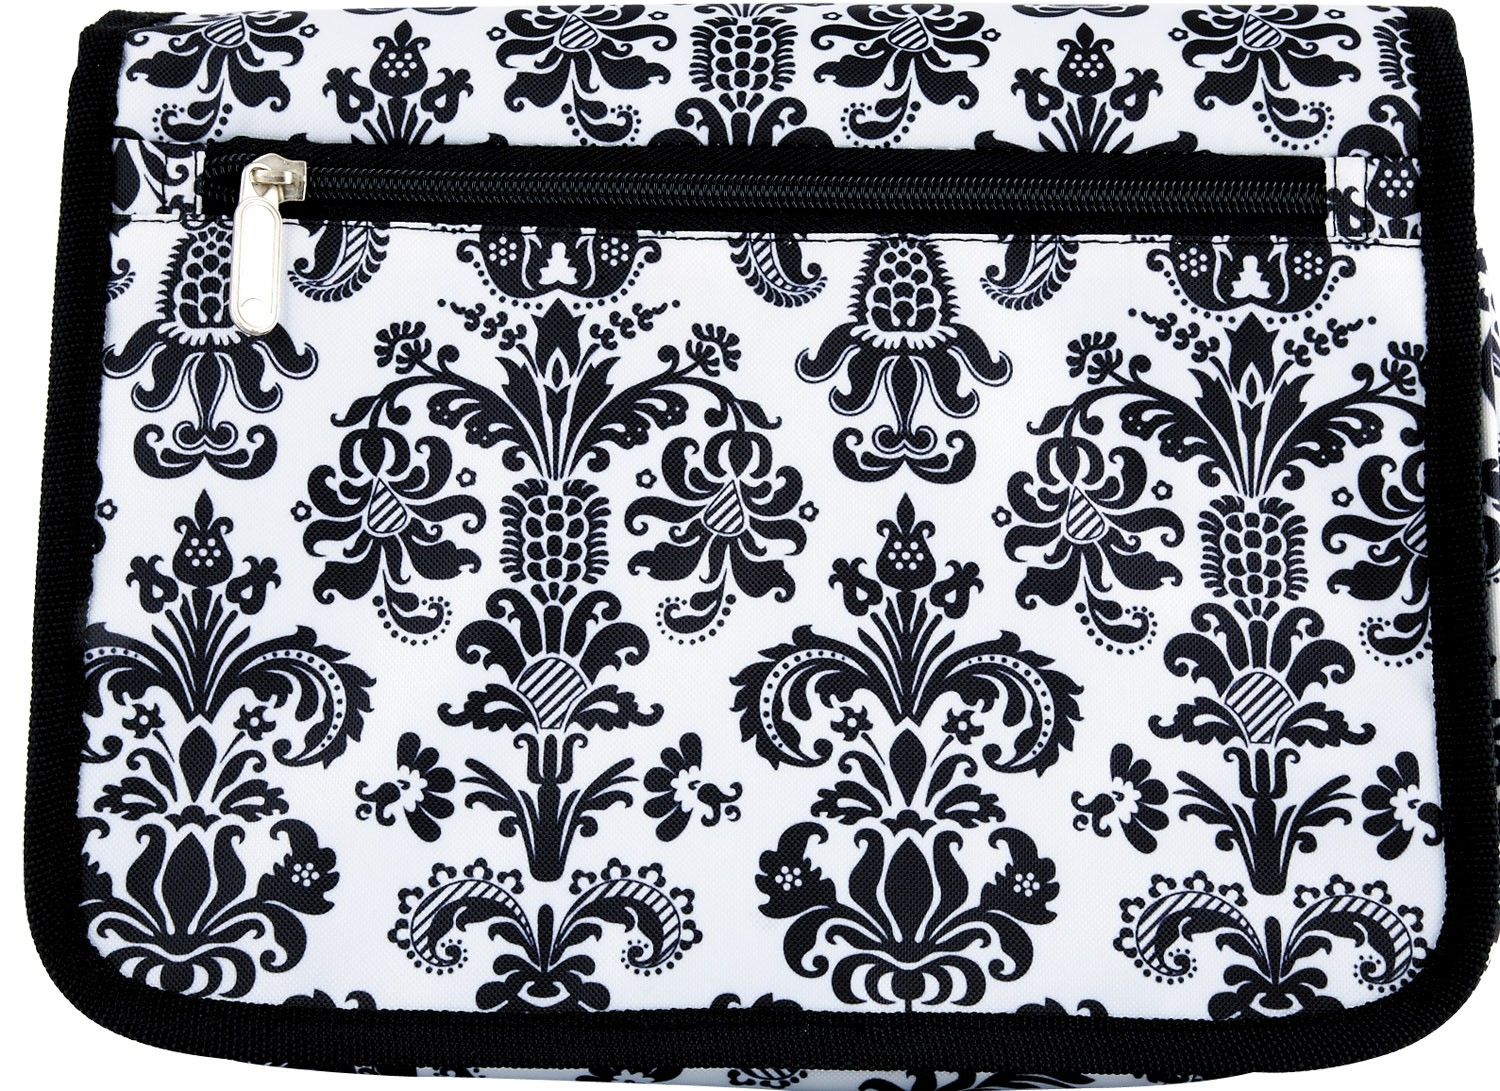 """[""""Little girls will love carrying their Bible to church in this cute \r\nBible cover. The canvas Bible case is covered in black and white damask and features a zippered closure. \r\n The convenient outside zippered pocket, spine handle and pen loop make \r\nit easy for her to carry all of her essentials in this Bible cover.Holds Bibles up to 9-1\/2\""""(L) x 7\""""(W) x 1-1\/2\""""(D)""""] $19.99"""